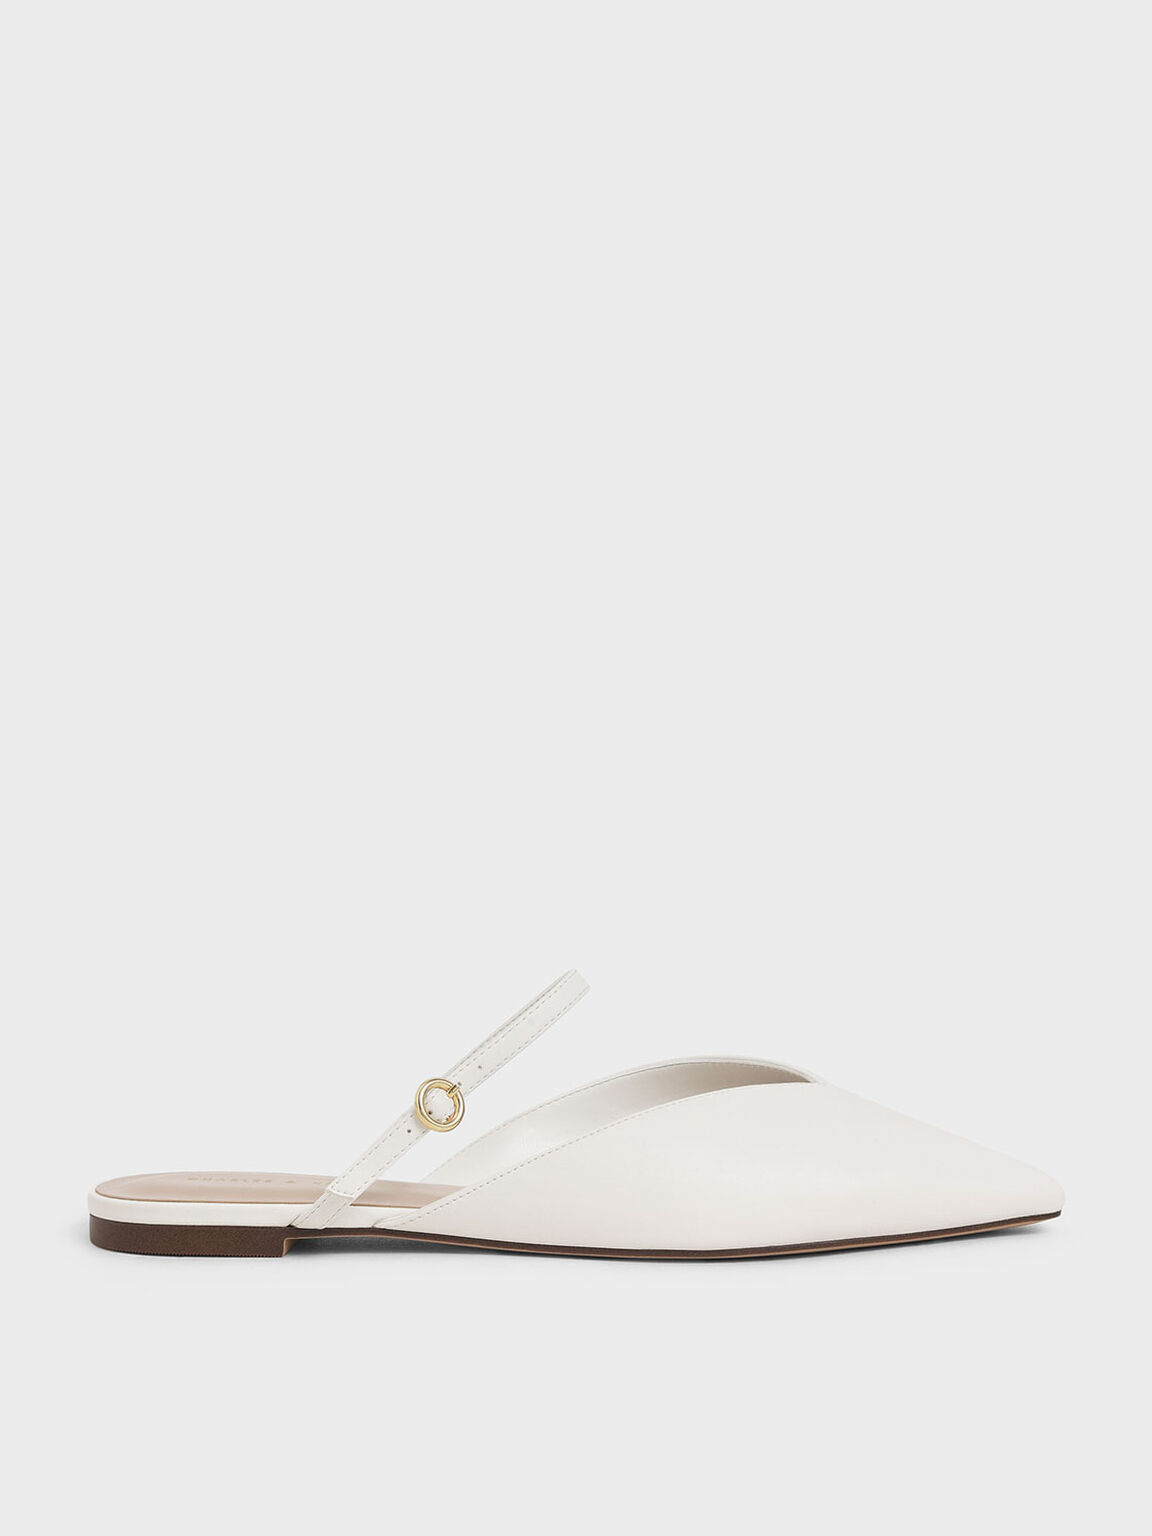 V-Cut Mary Jane Mules, White, hi-res